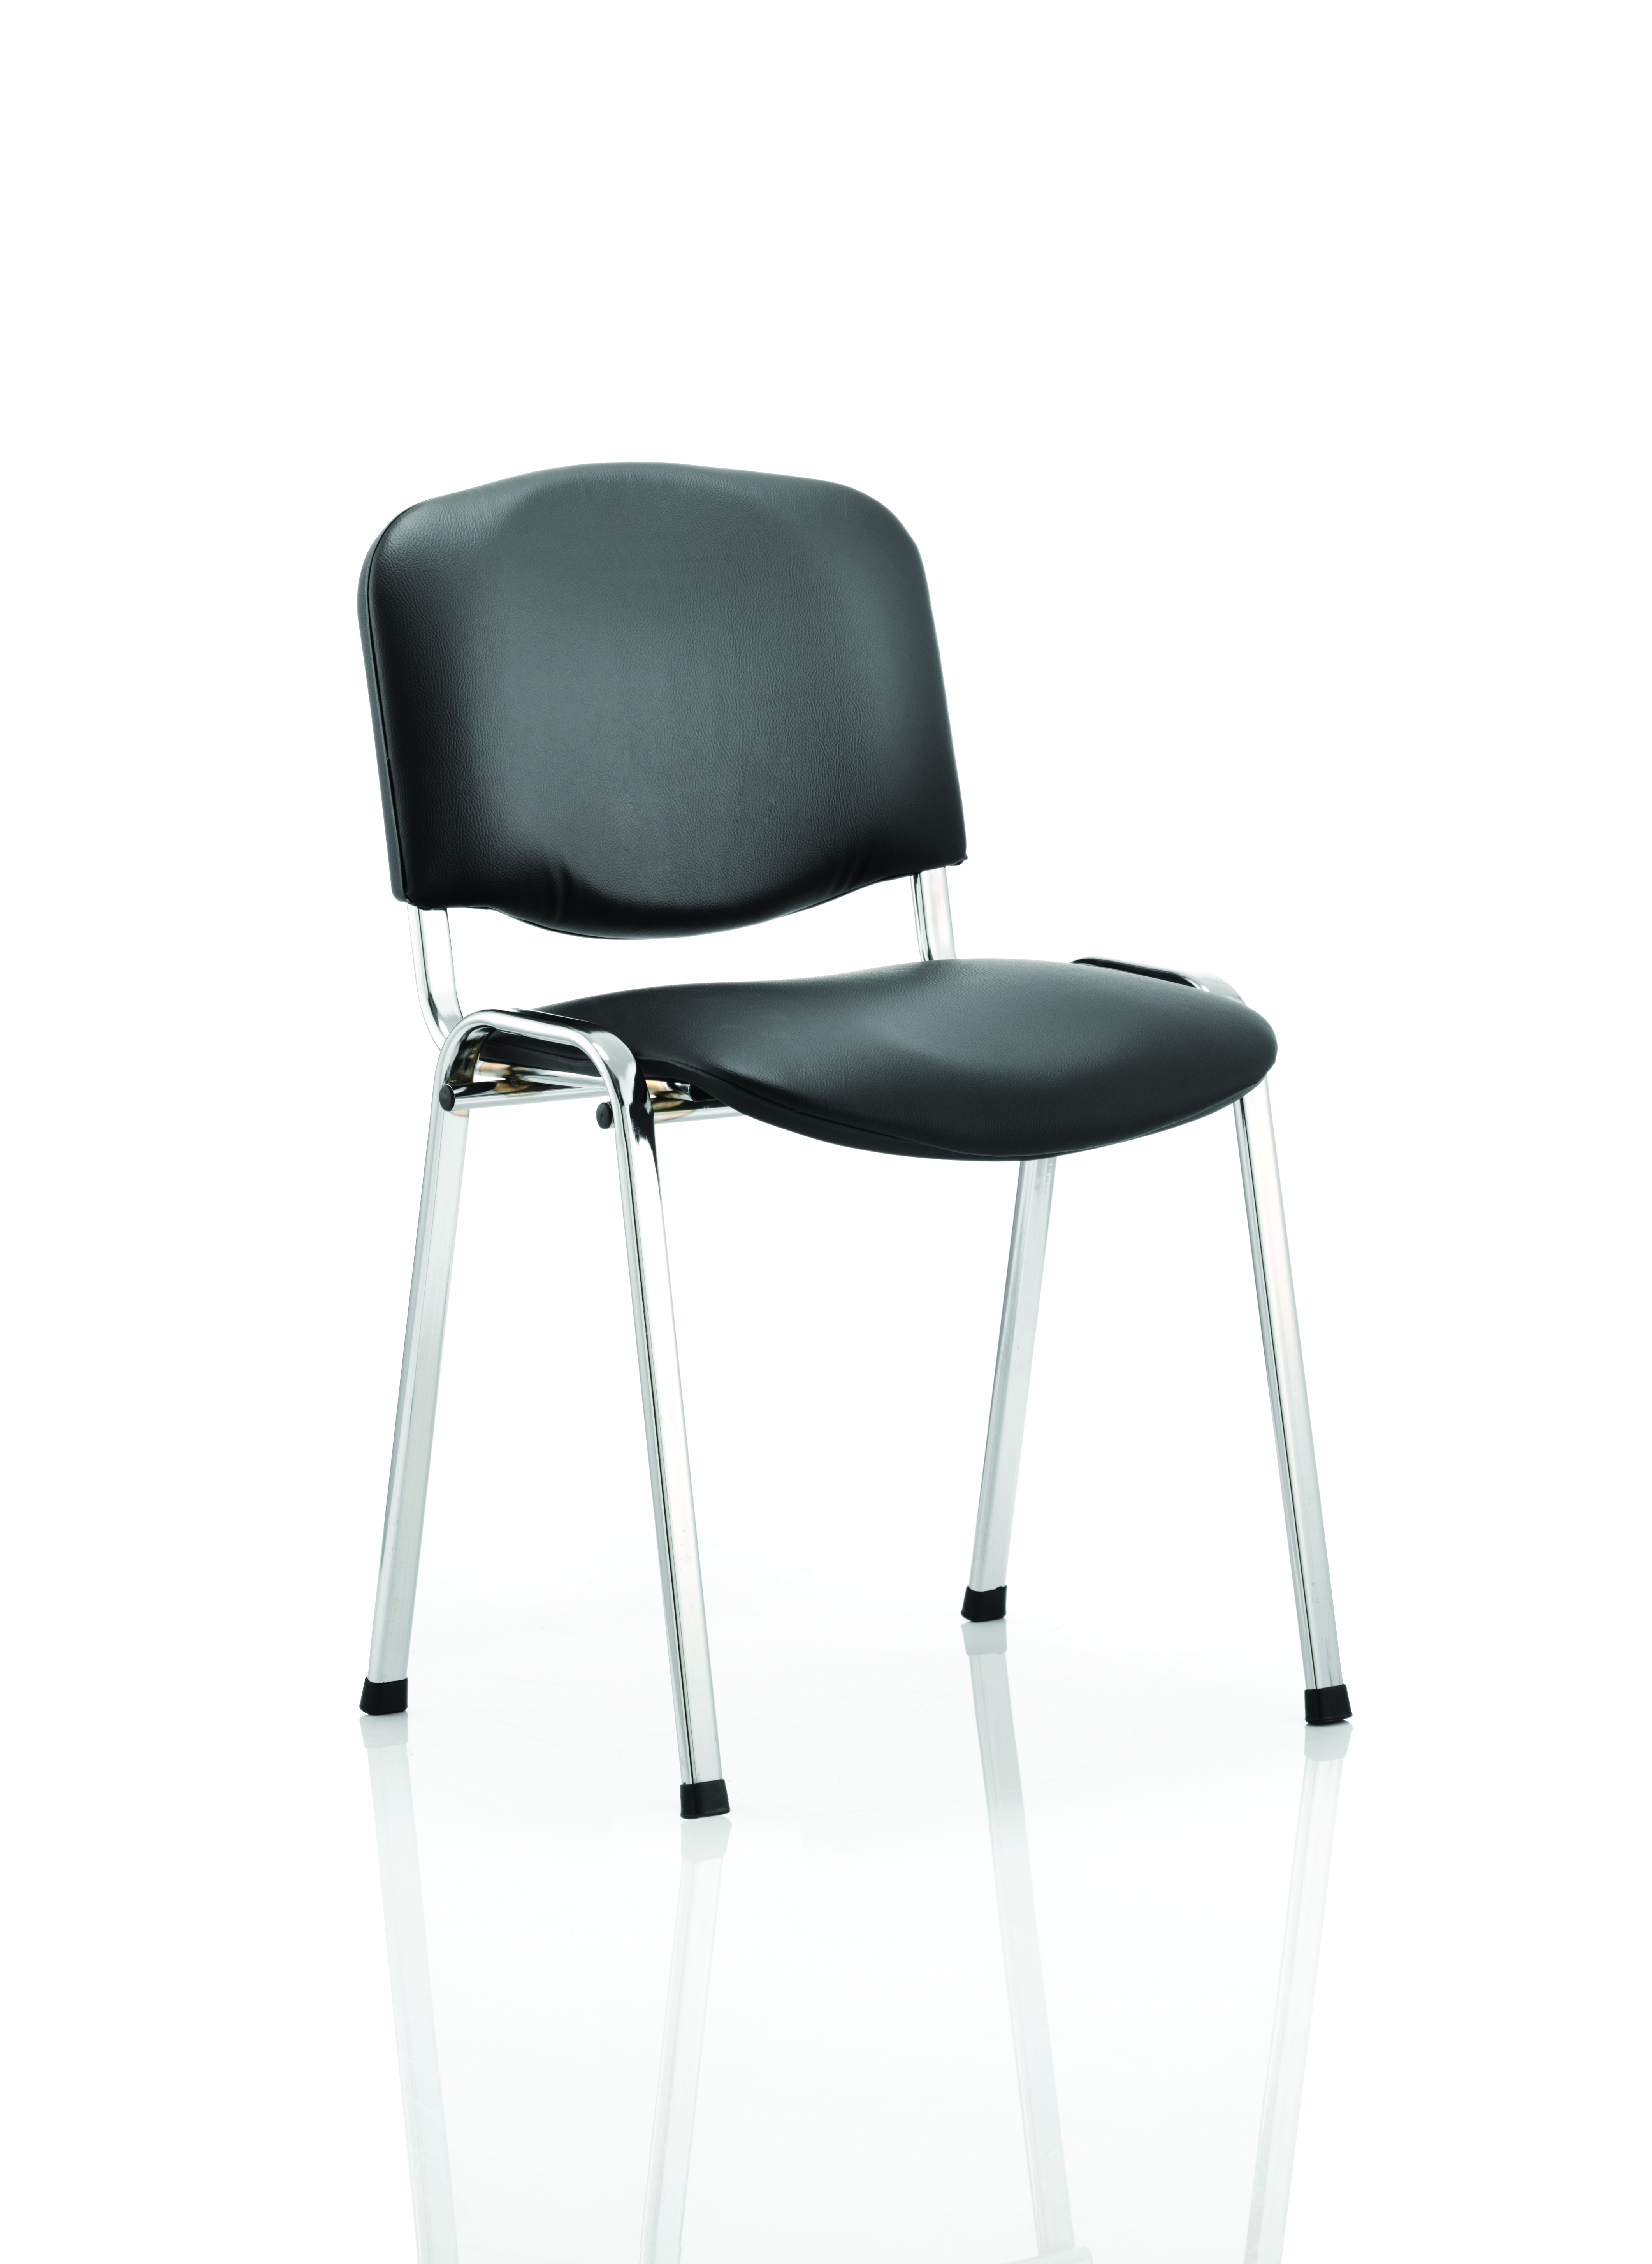 Stacking Chairs ISO Stacking Chair Black Vinyl Chrome Frame BR000071